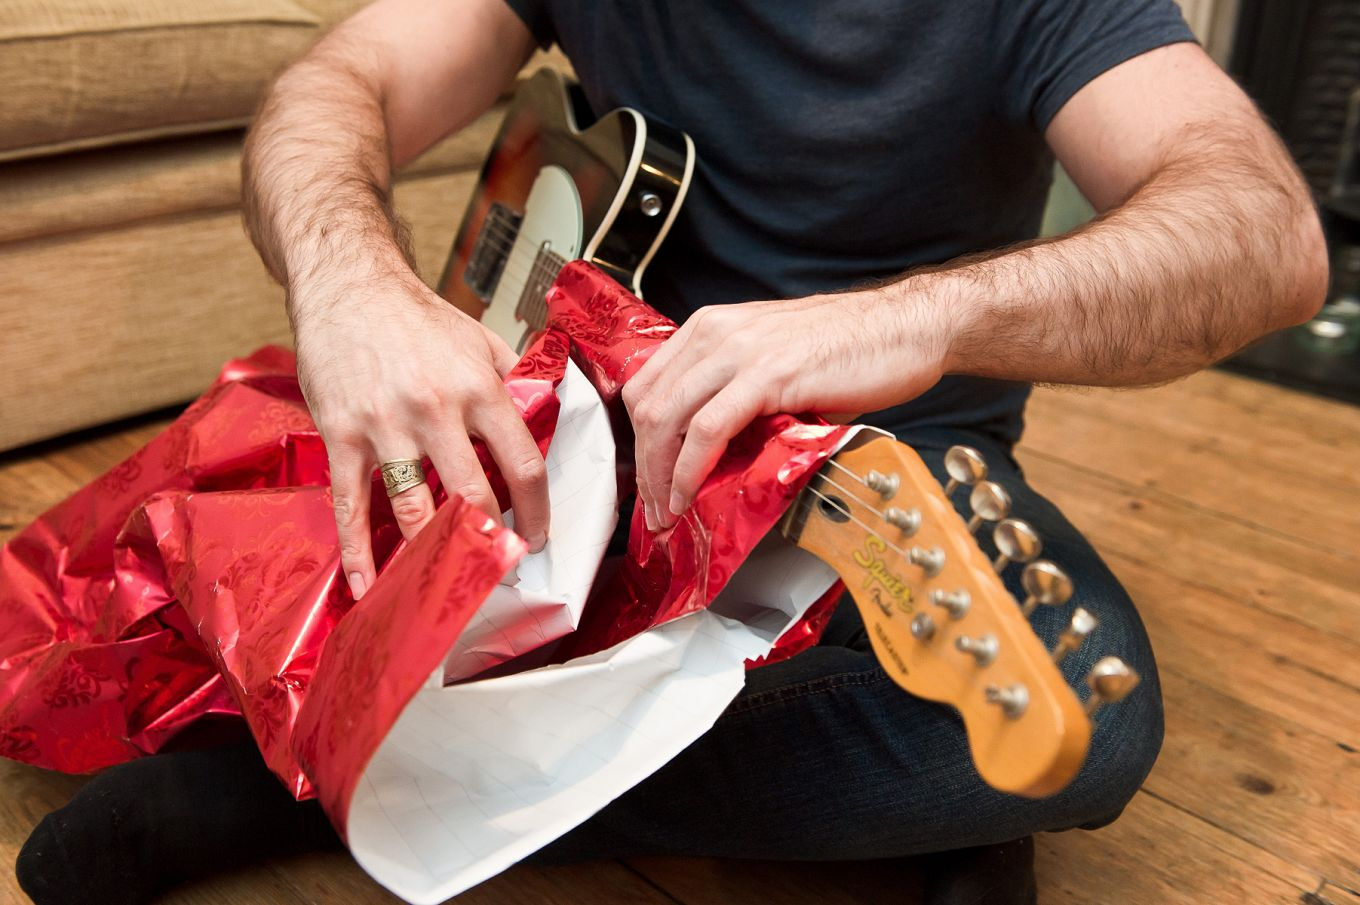 Unwrapping musical instrument